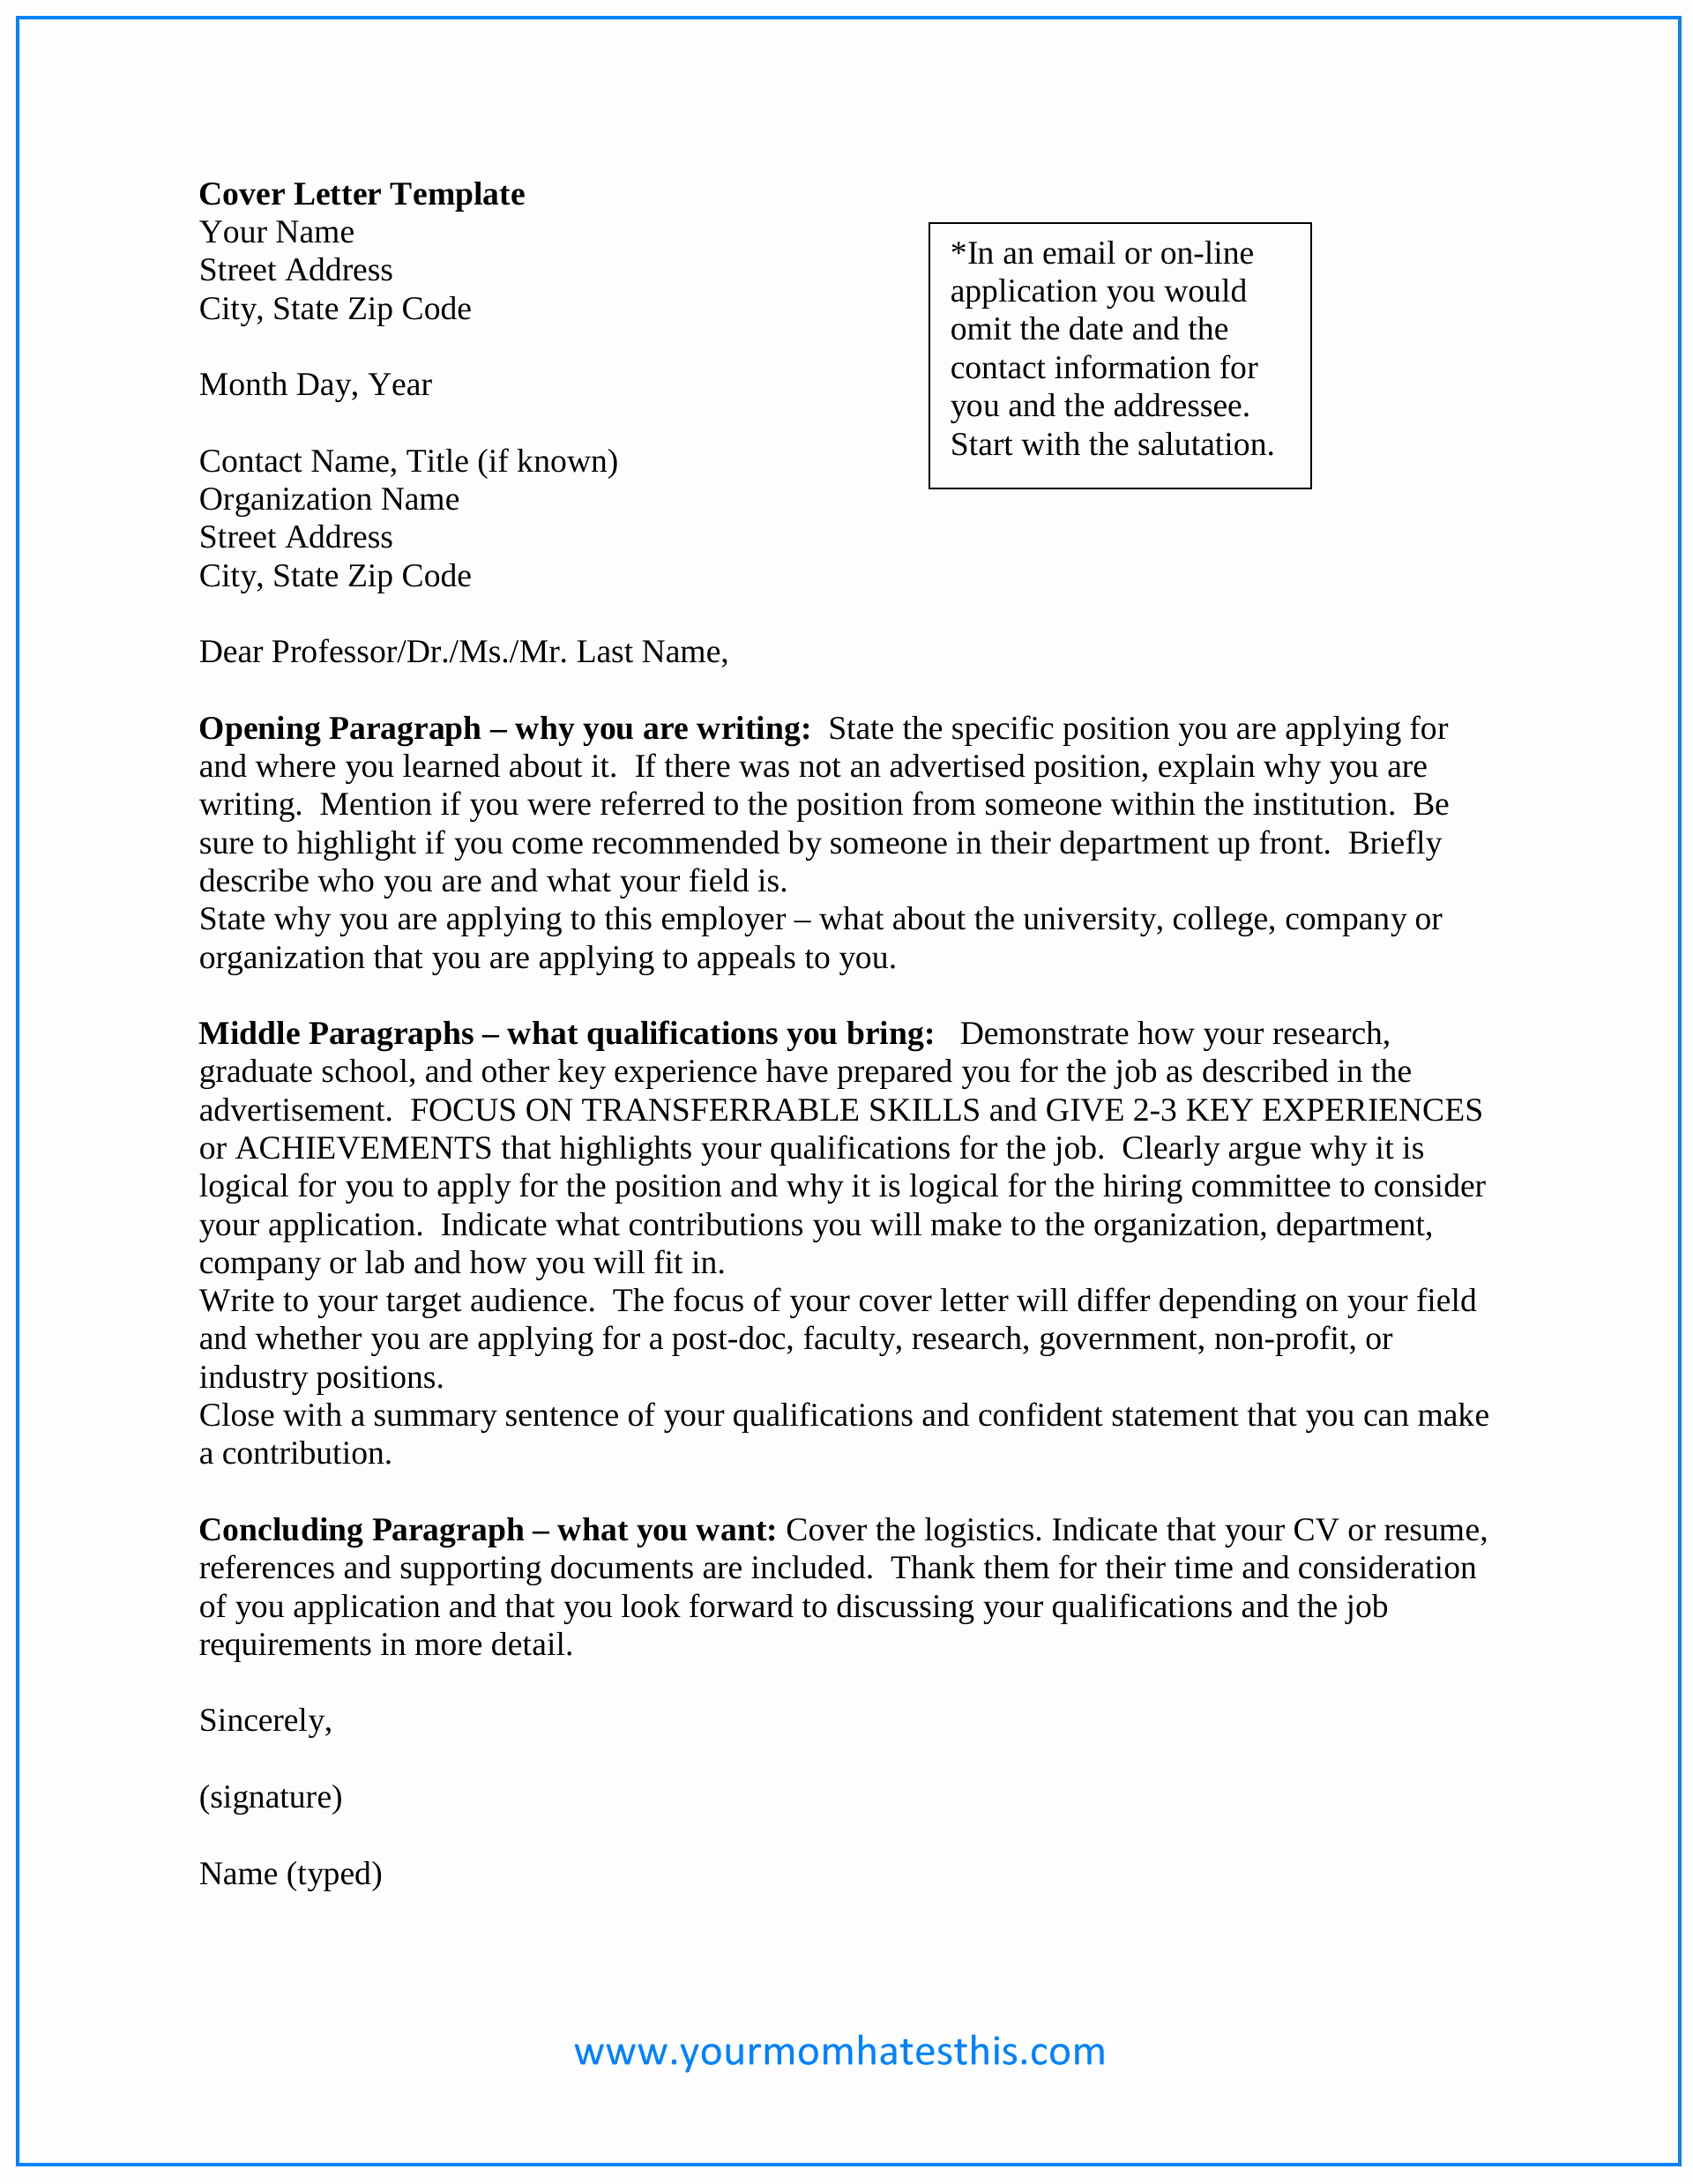 Cover Letter Template Doc Best Of Download Cover Letter Samples